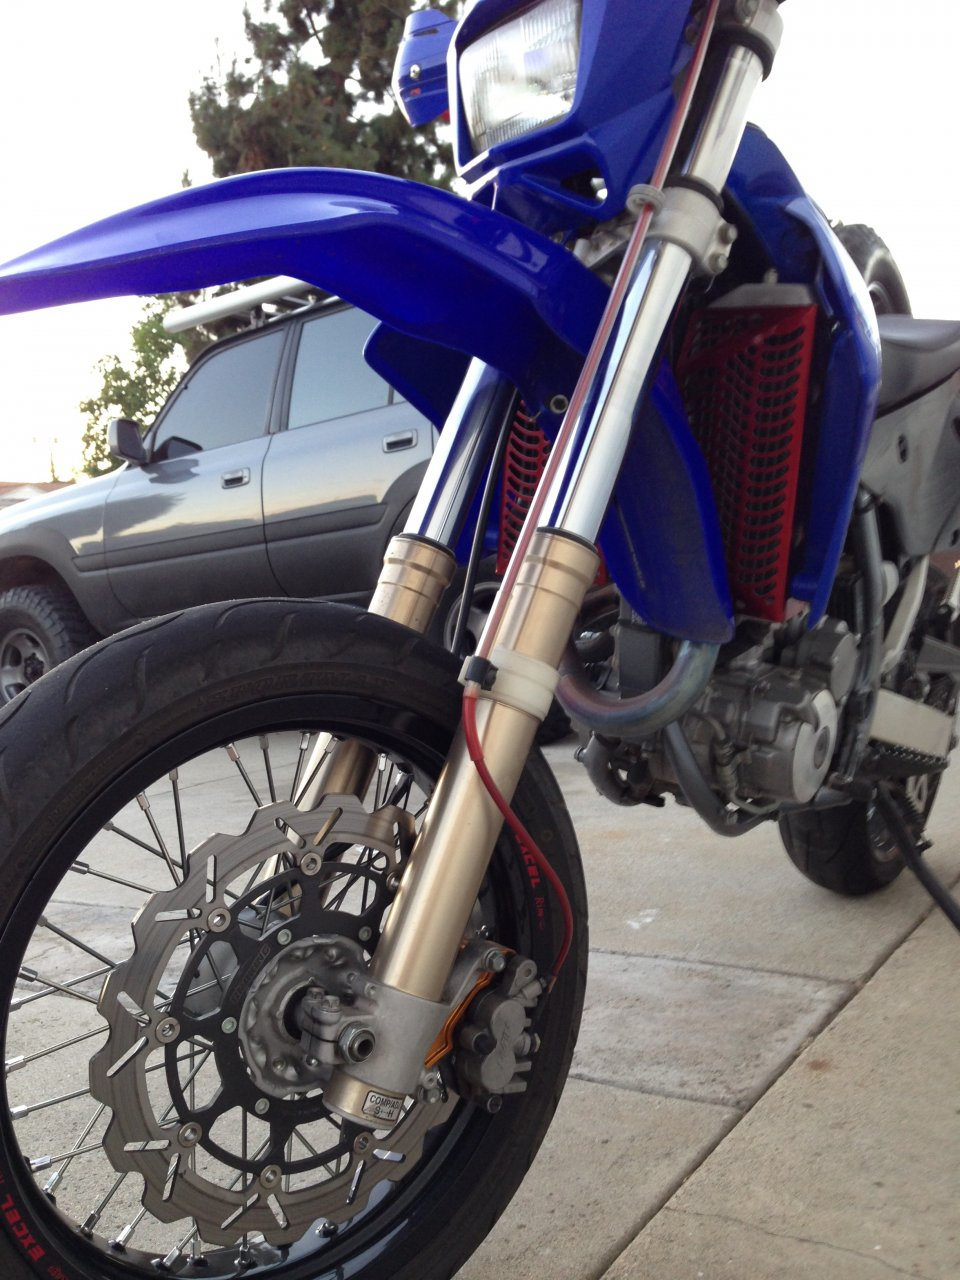 For Sale - 2007 Drz-400s With Dirt and Supermoto Wheelset